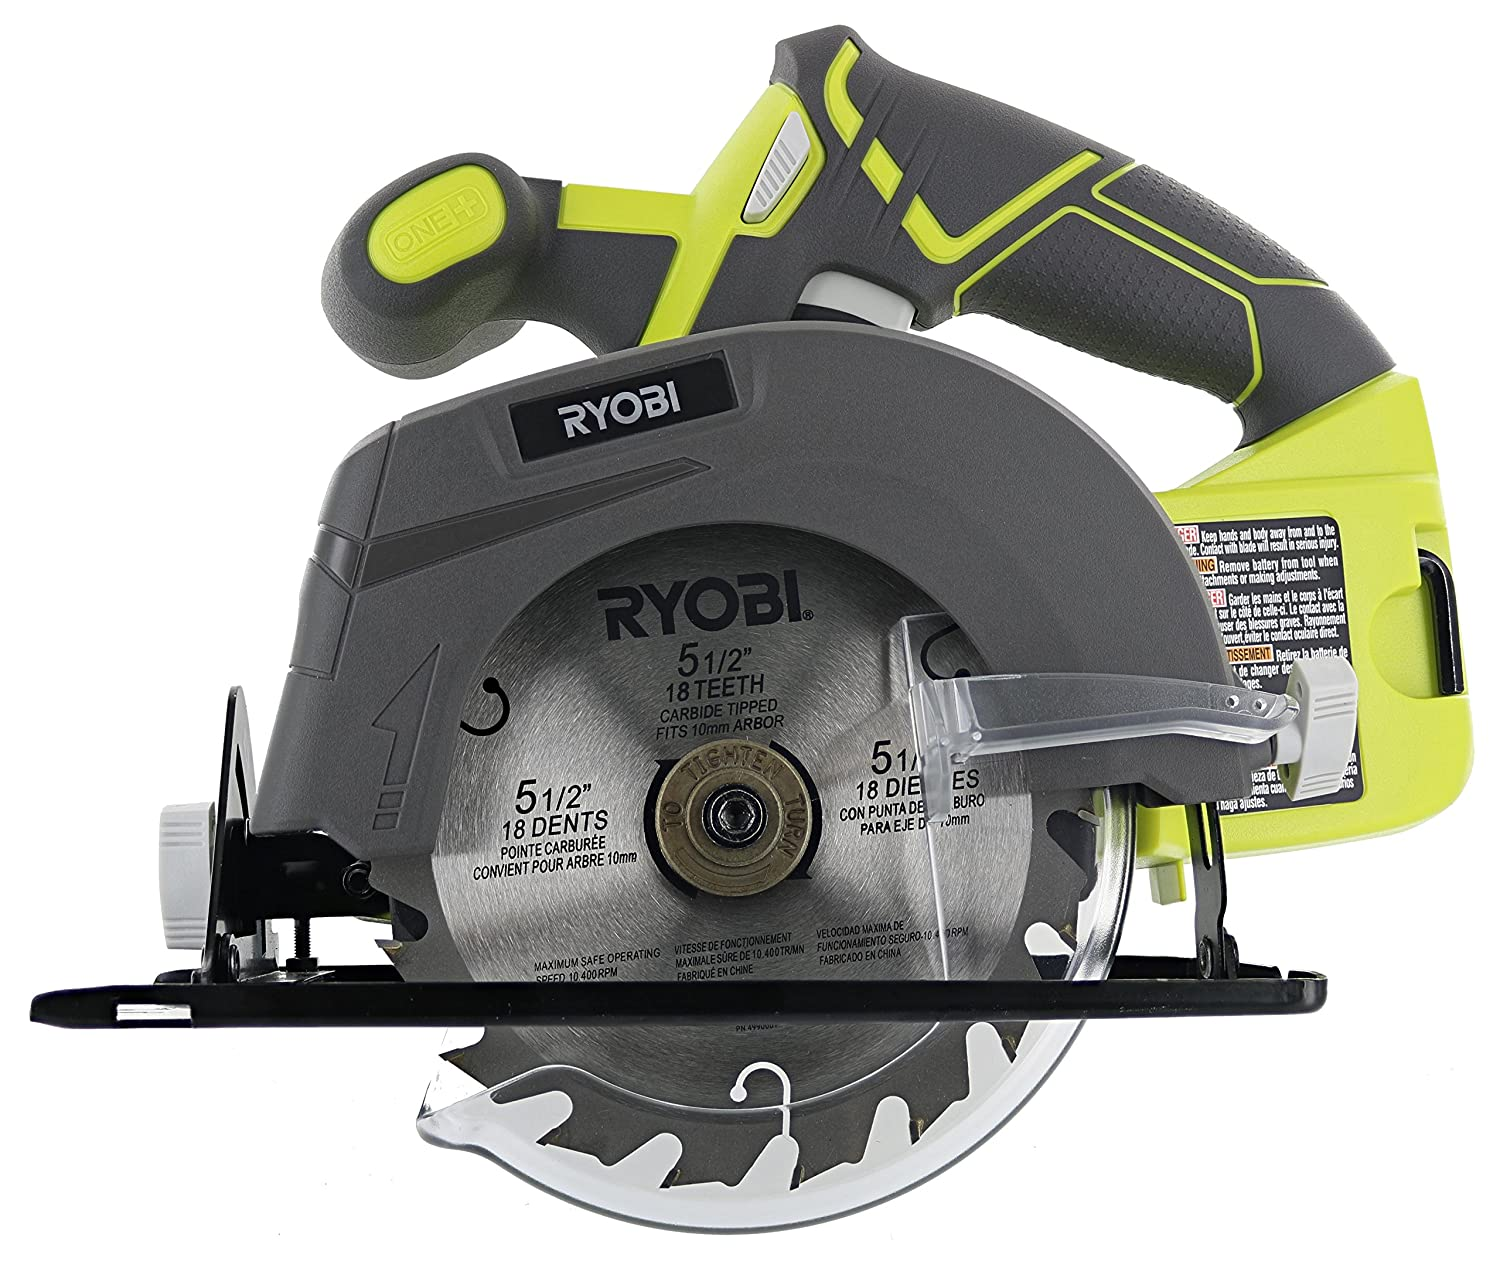 "Ryobi One P505 18V Lithium Ion Cordless 5 1/2"" 4,700 RPM Circular Saw (Battery Not Included, Power Tool Only), Green"